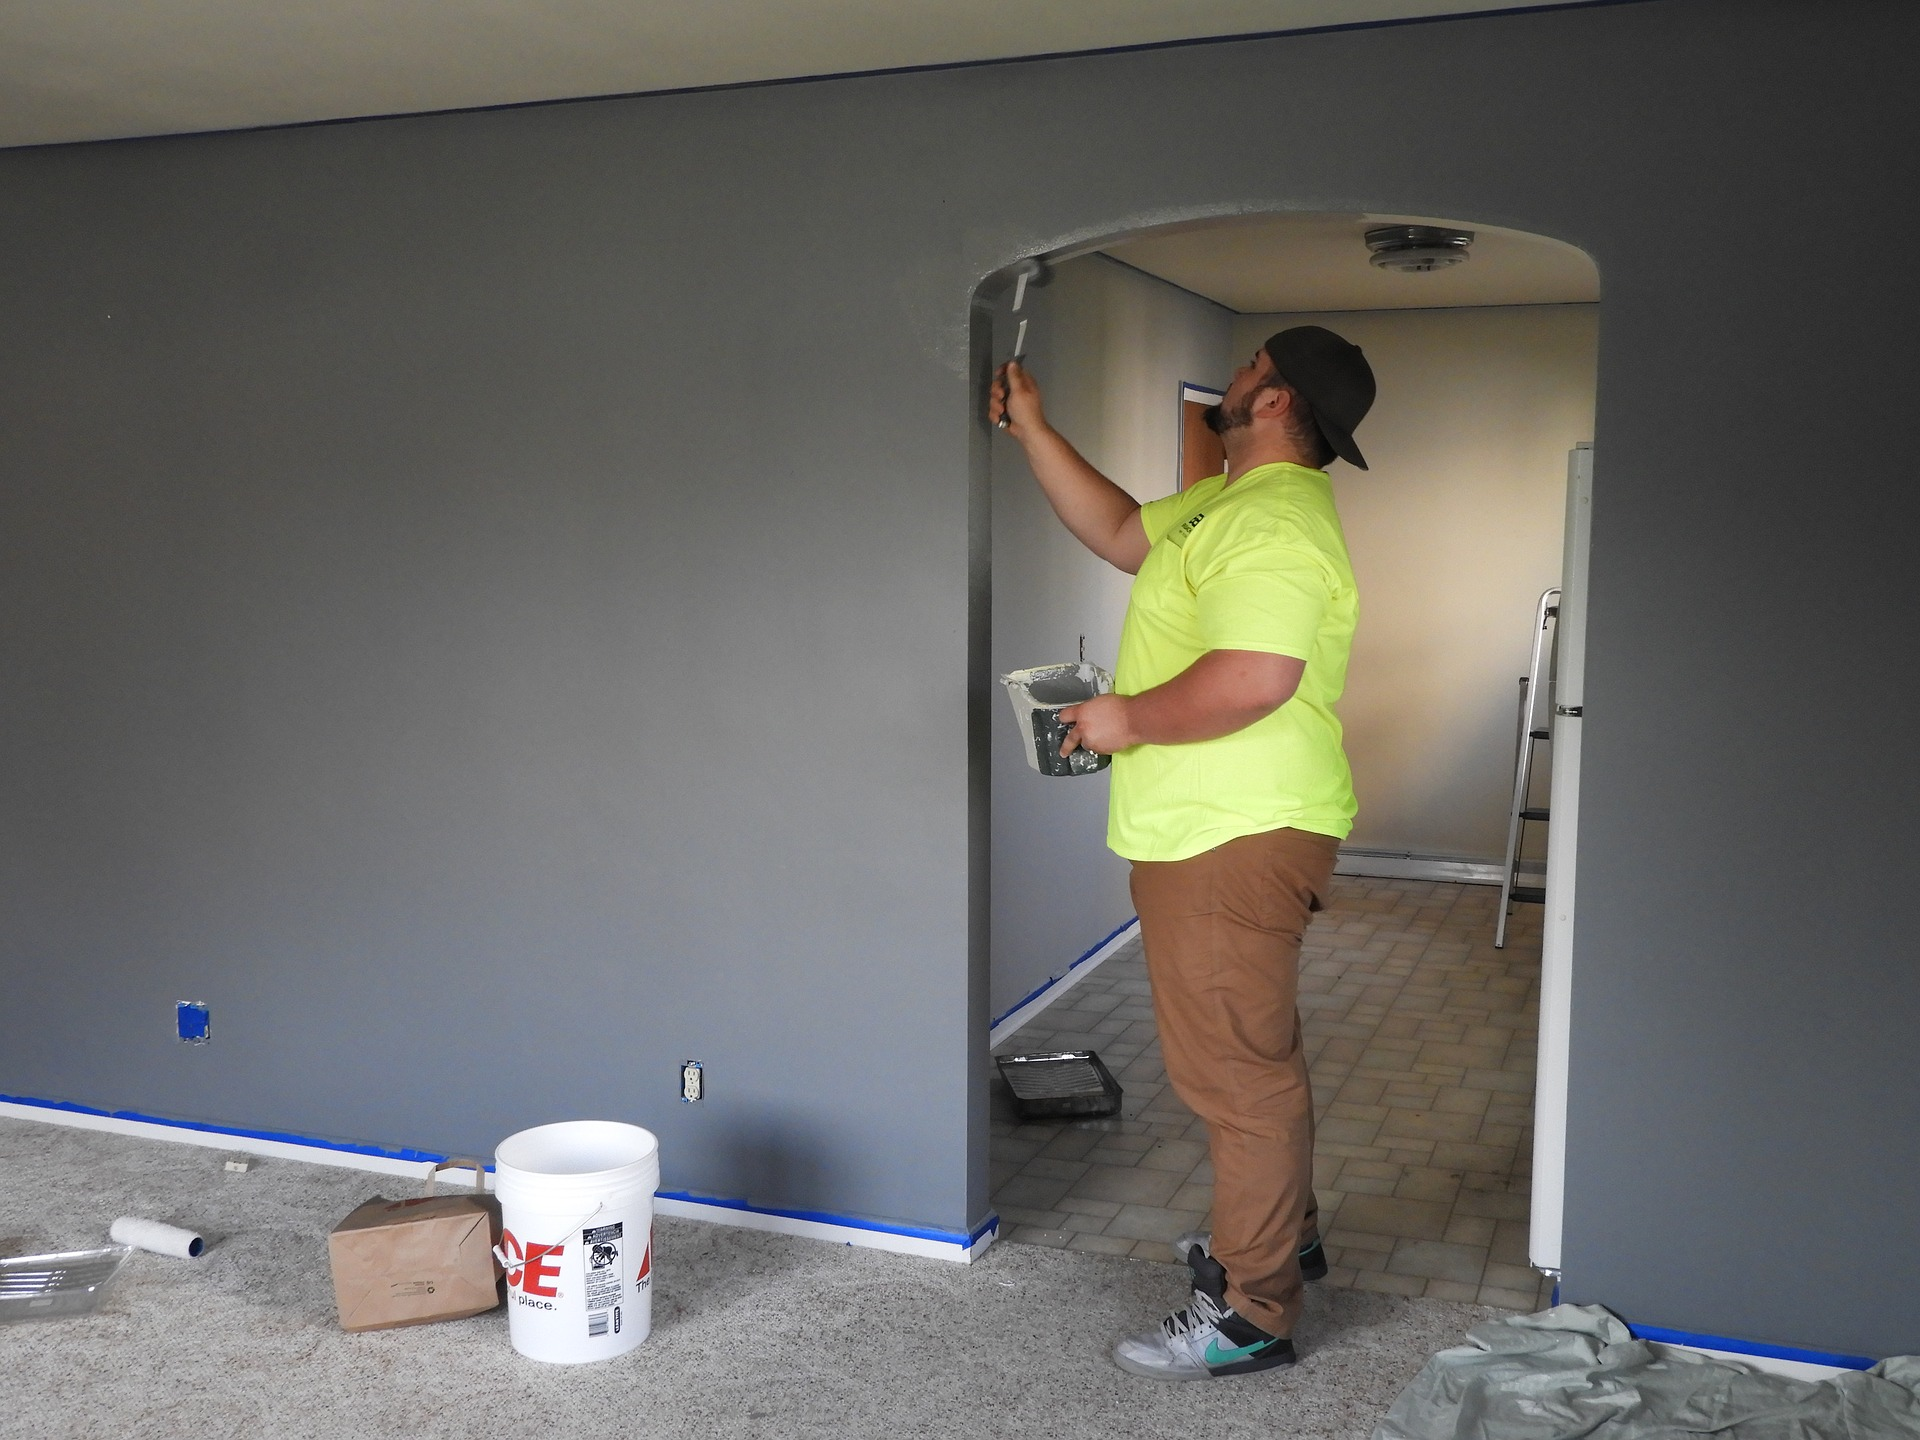 indoor painting in kenosha, interior painitng kenosha, painting company kenosha